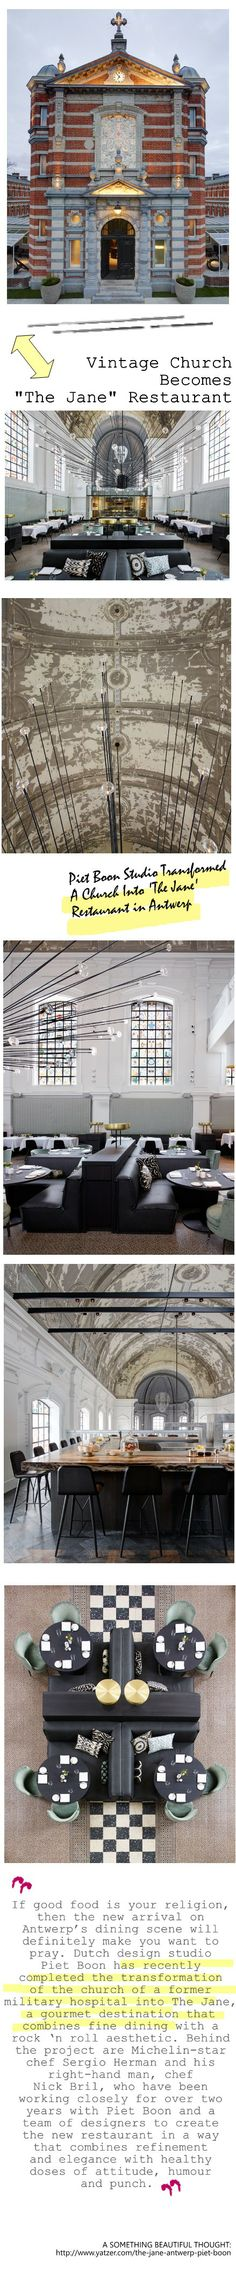 Dutch design studio Piet Boon has recently completed the transformation of the church of a former military hospital into The Jane, a gourmet destination that combines fine dining with a rock 'n roll aesthetic. Expect a three month wait for reservations. #the_jane, #Dutch_Piet_Boon, church_reuse_restaurant